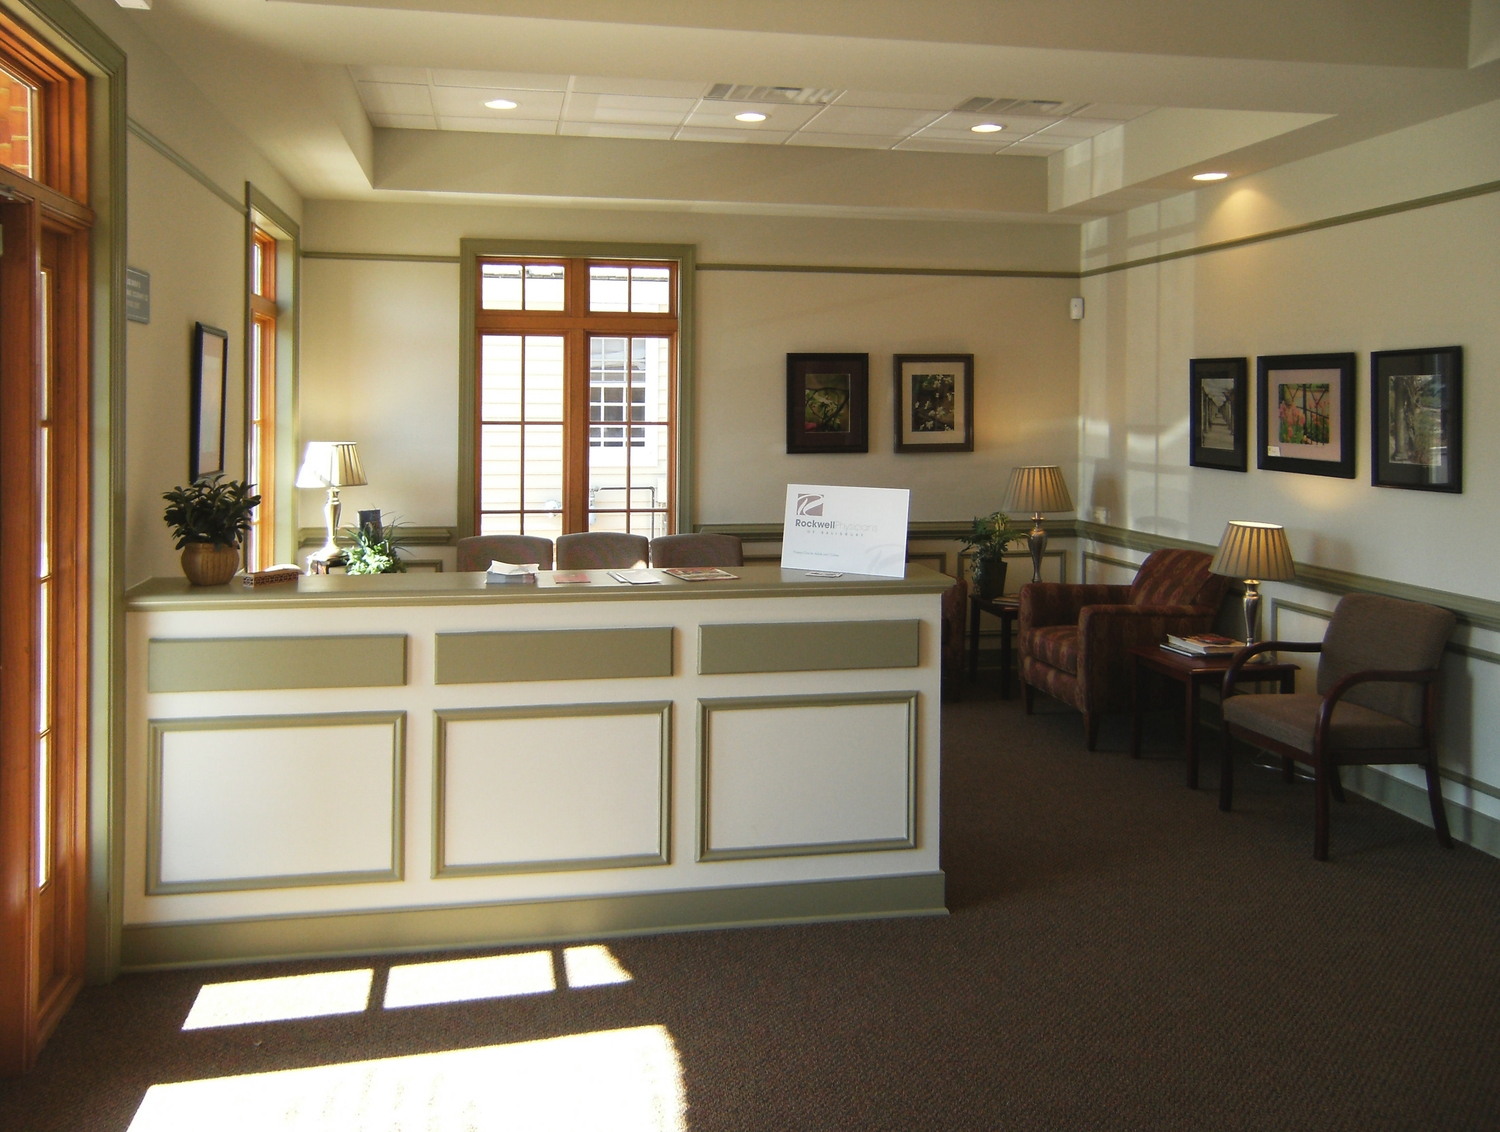 Rockwell Physicians - waiting room